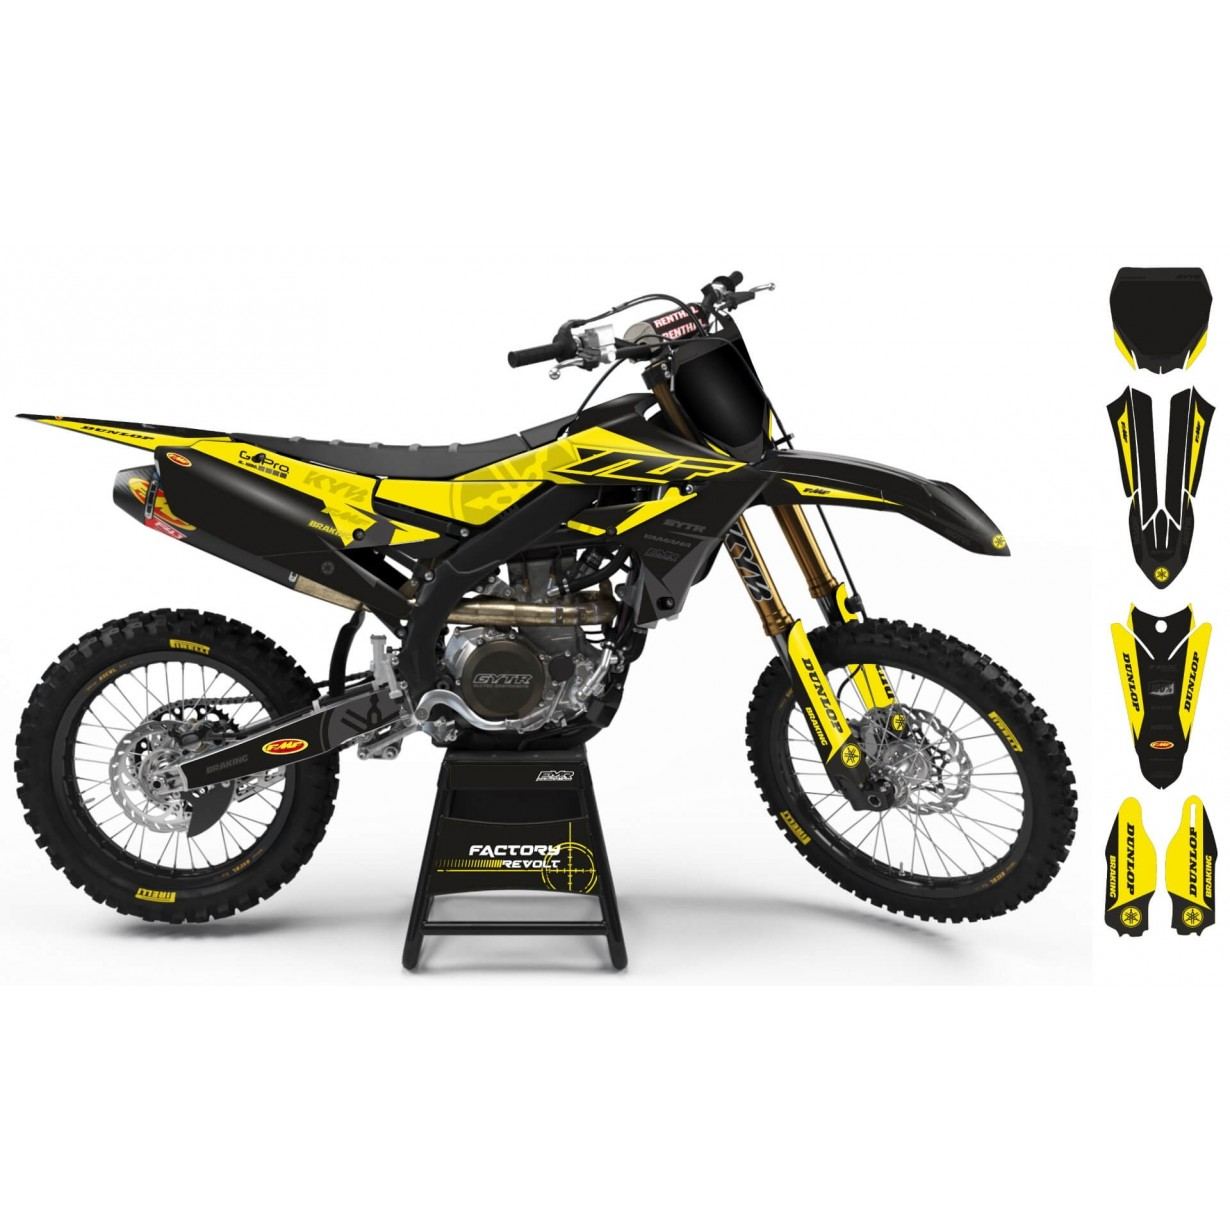 Kit déco Perso YAMAHA Factory Revolt A26E6 black/yellow